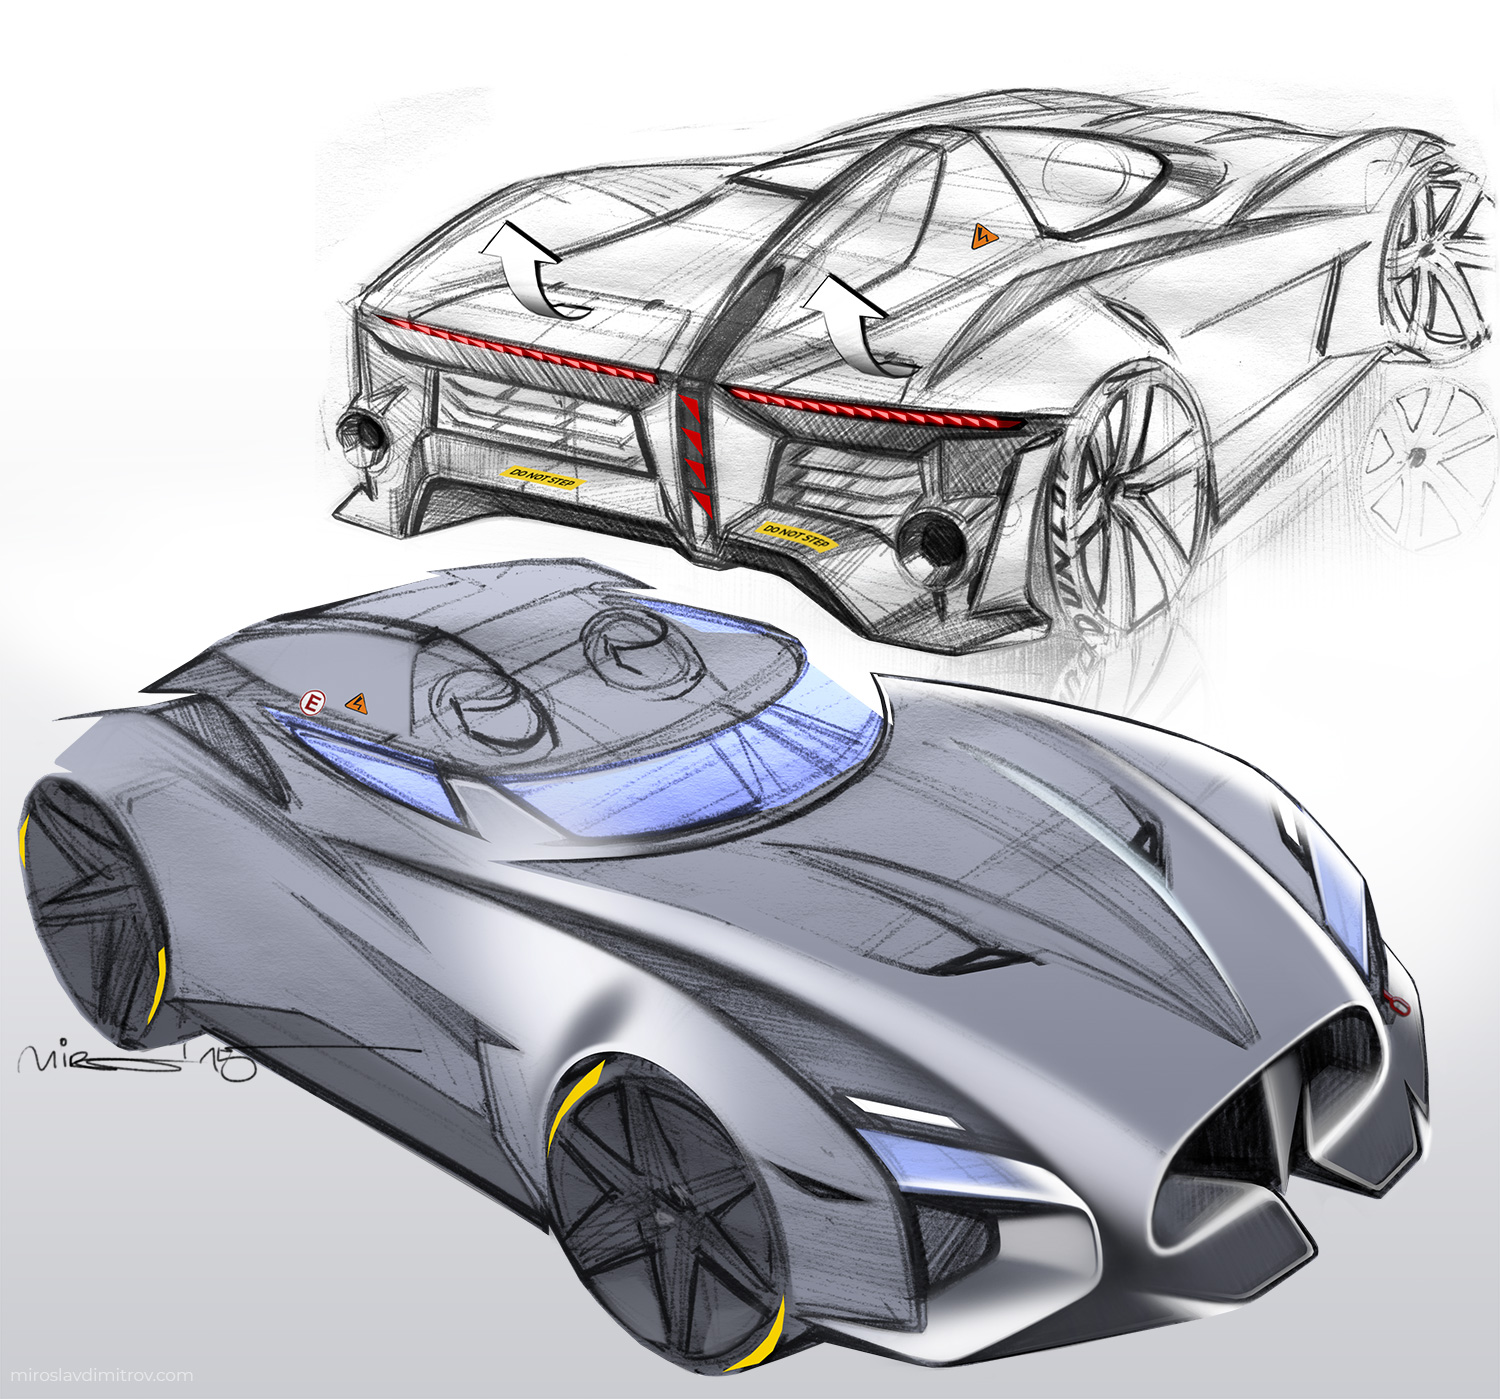 Design Sketch of Electric Race Car © 2019 Miroslav Dimitrov